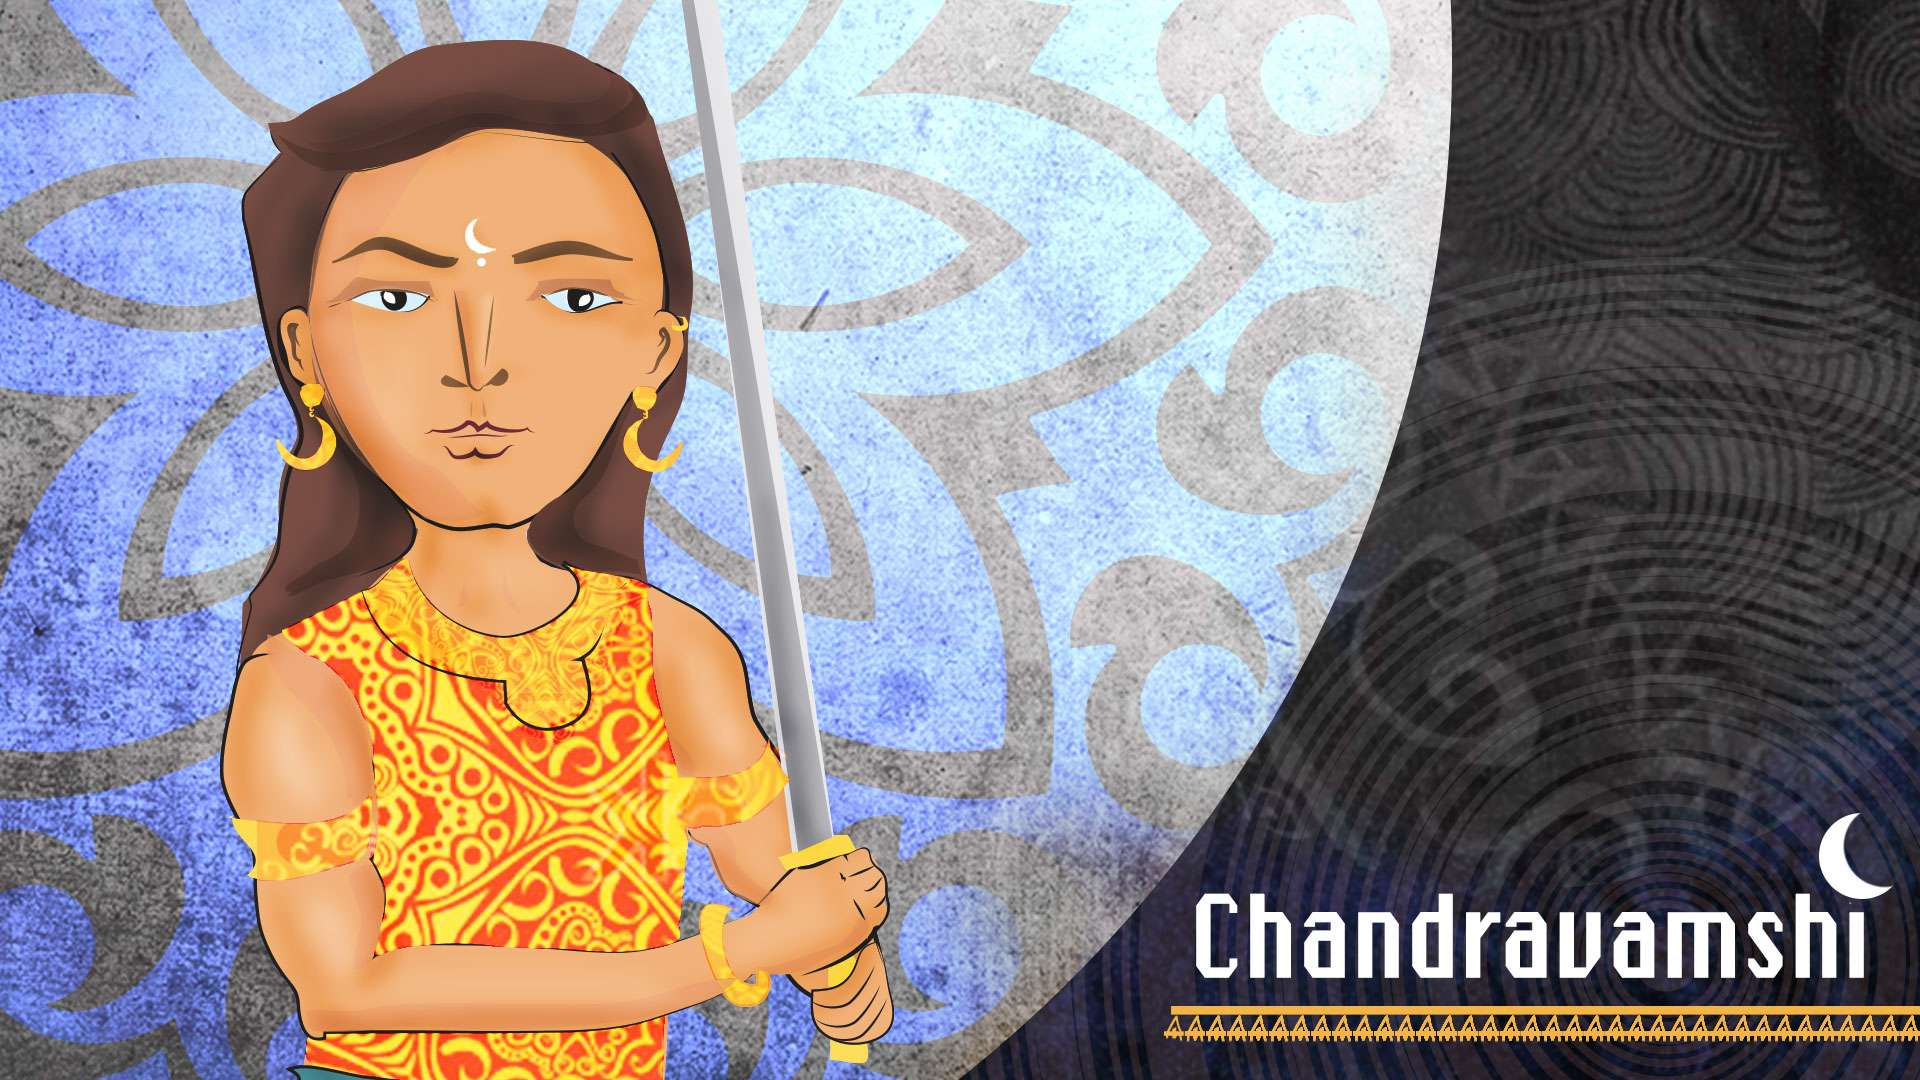 Mahabharat Episode 2: The Origin of the Chandravamshis